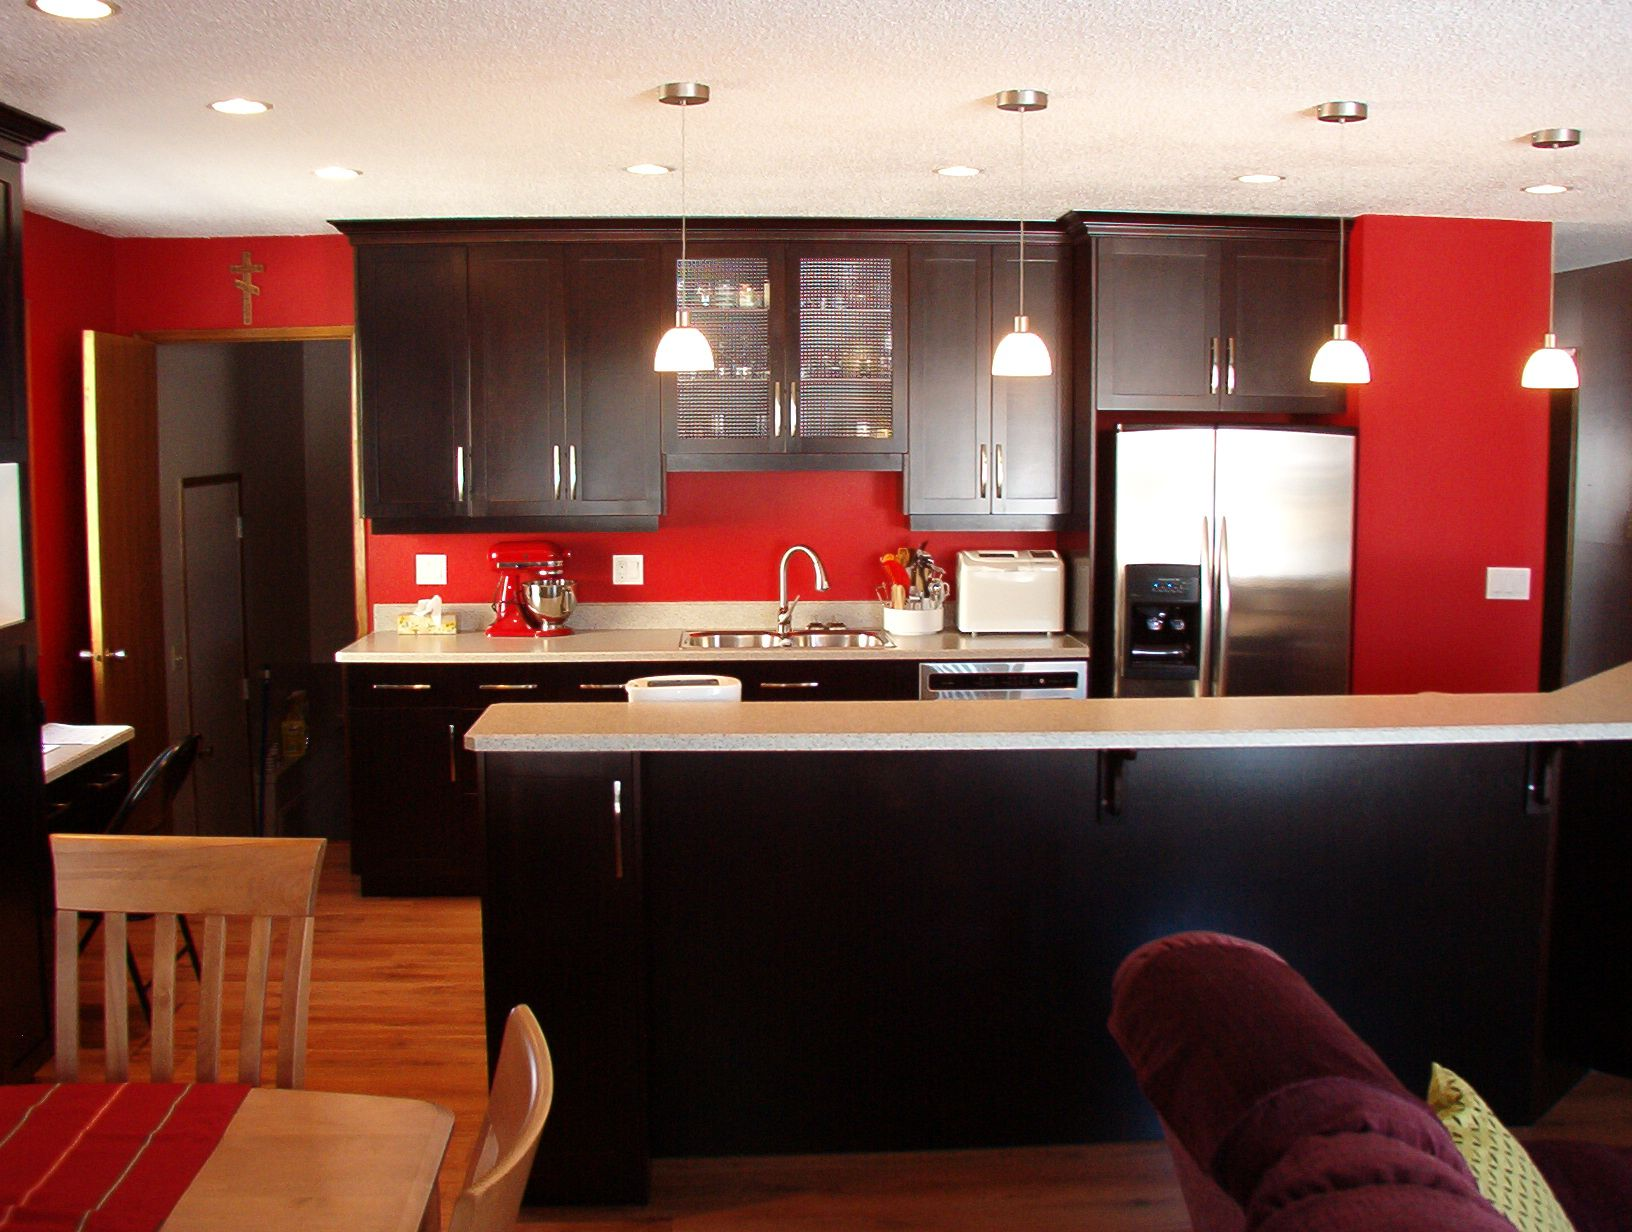 Black And Red Theme Liking It A Lot Black And Red Kitchen Red Kitchen Walls Kitchen Colors